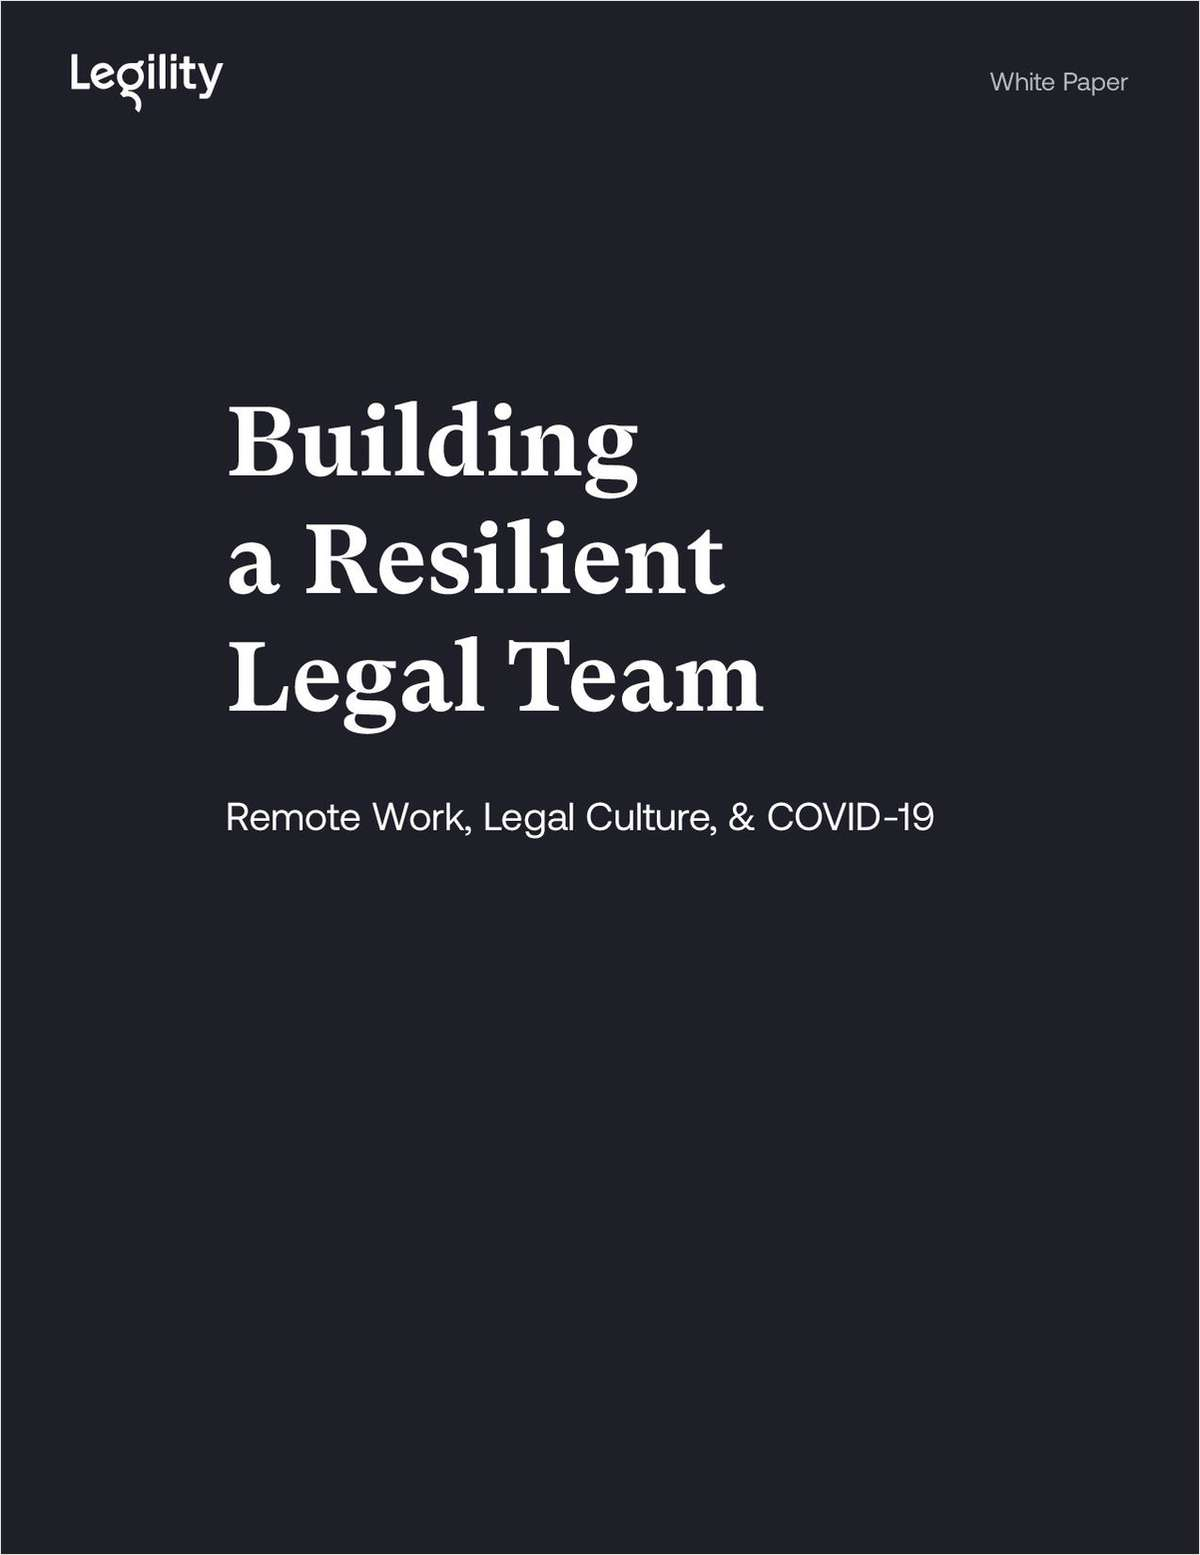 Building a Resilient Legal Team: Remote Work, Legal Culture, & COVID-19